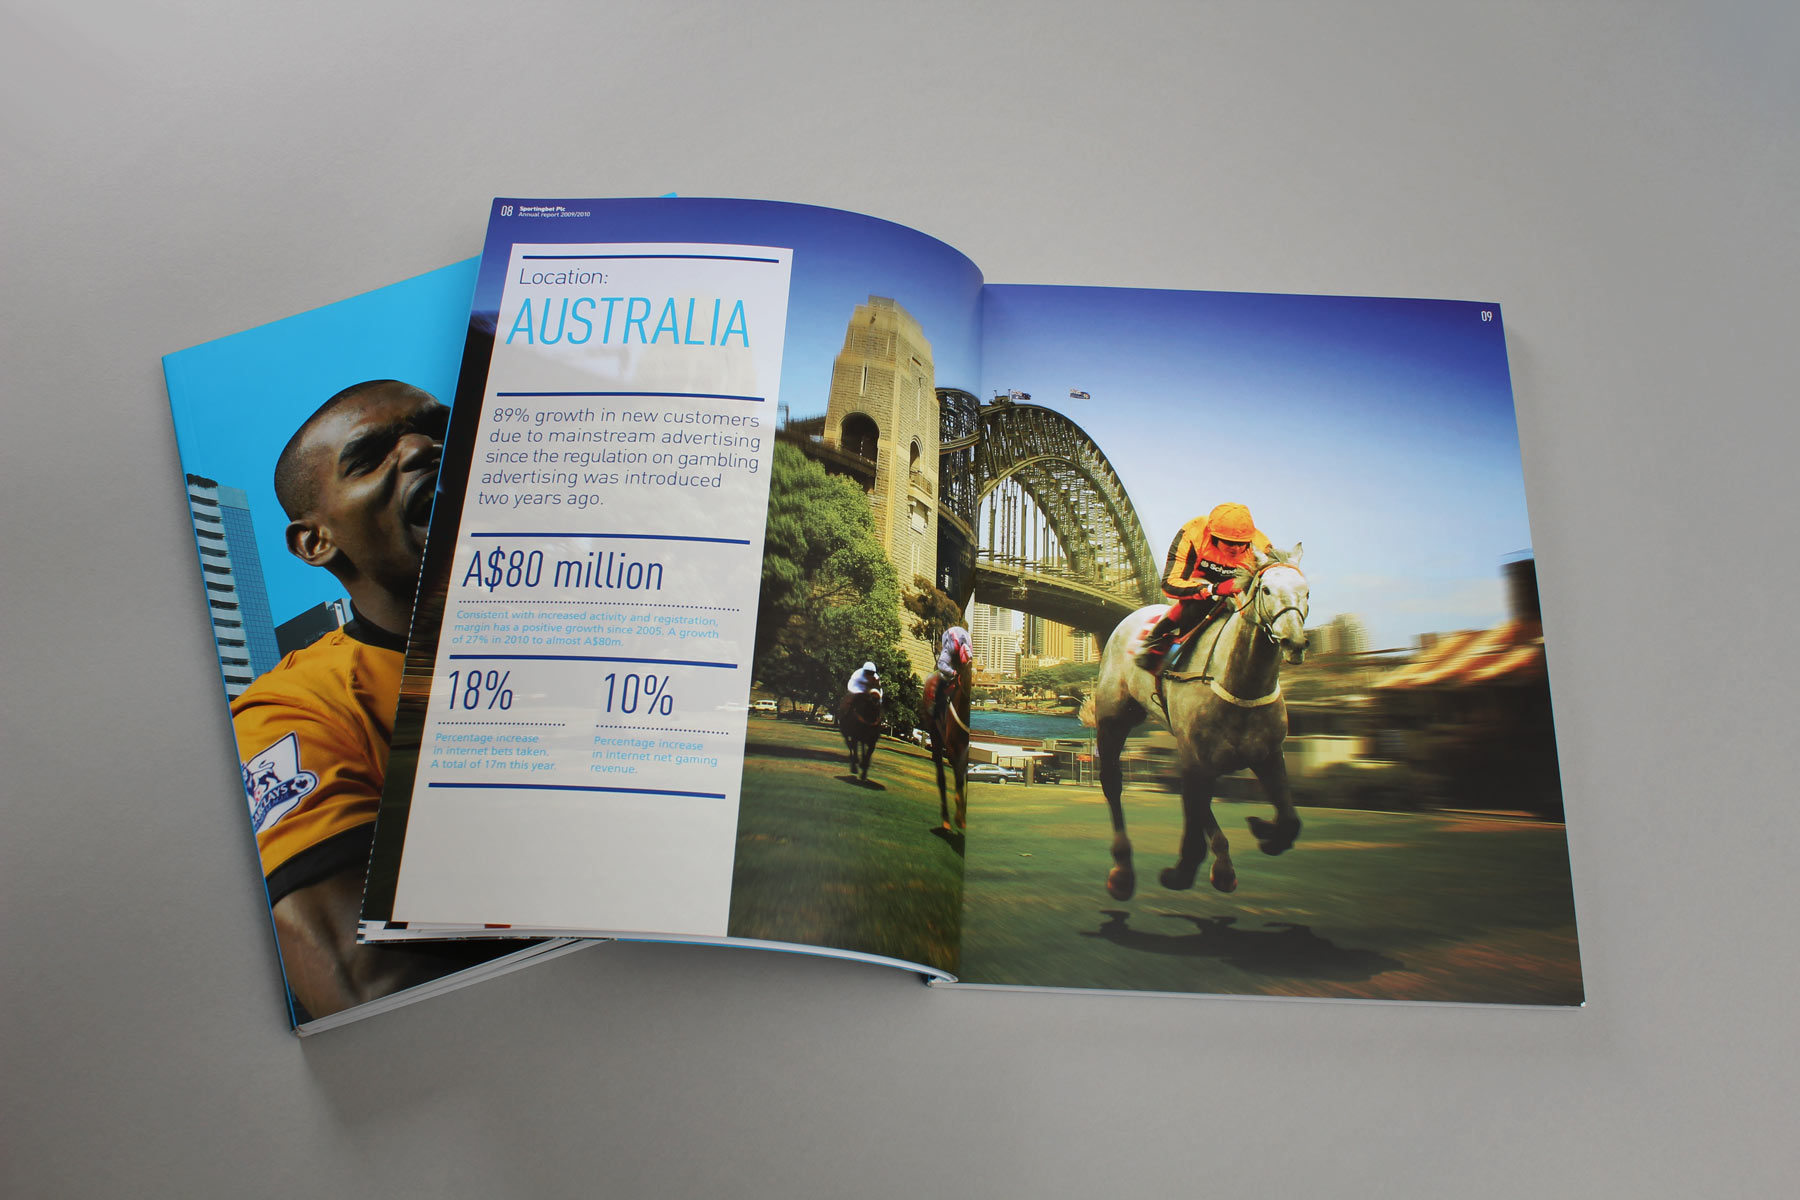 In Australia - Horseracing is the name of the game. On the left, regional facts and figures add weight to the image concept.